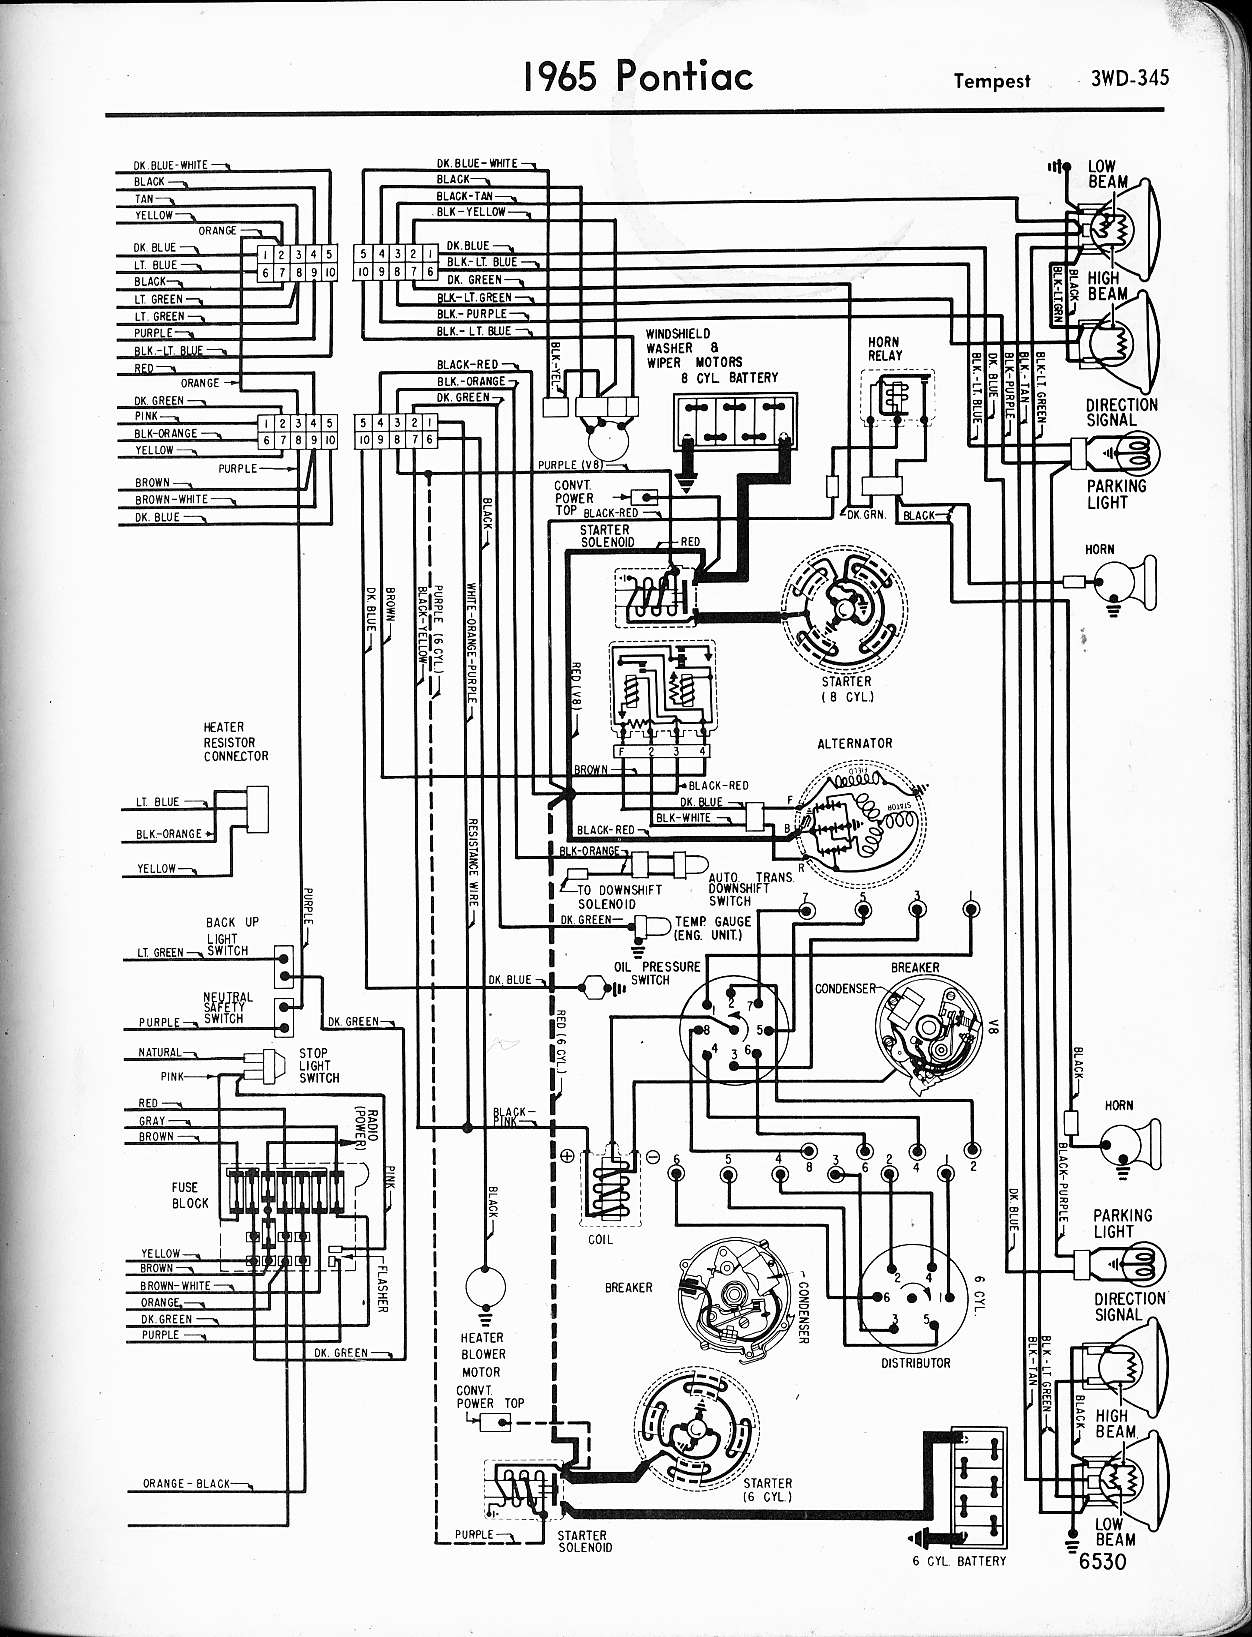 1967 Pontiac Fuse Box Diagram Worksheet And Wiring G6 Location 1970 Gto Another Diagrams U2022 Rh Benpaterson Co Uk